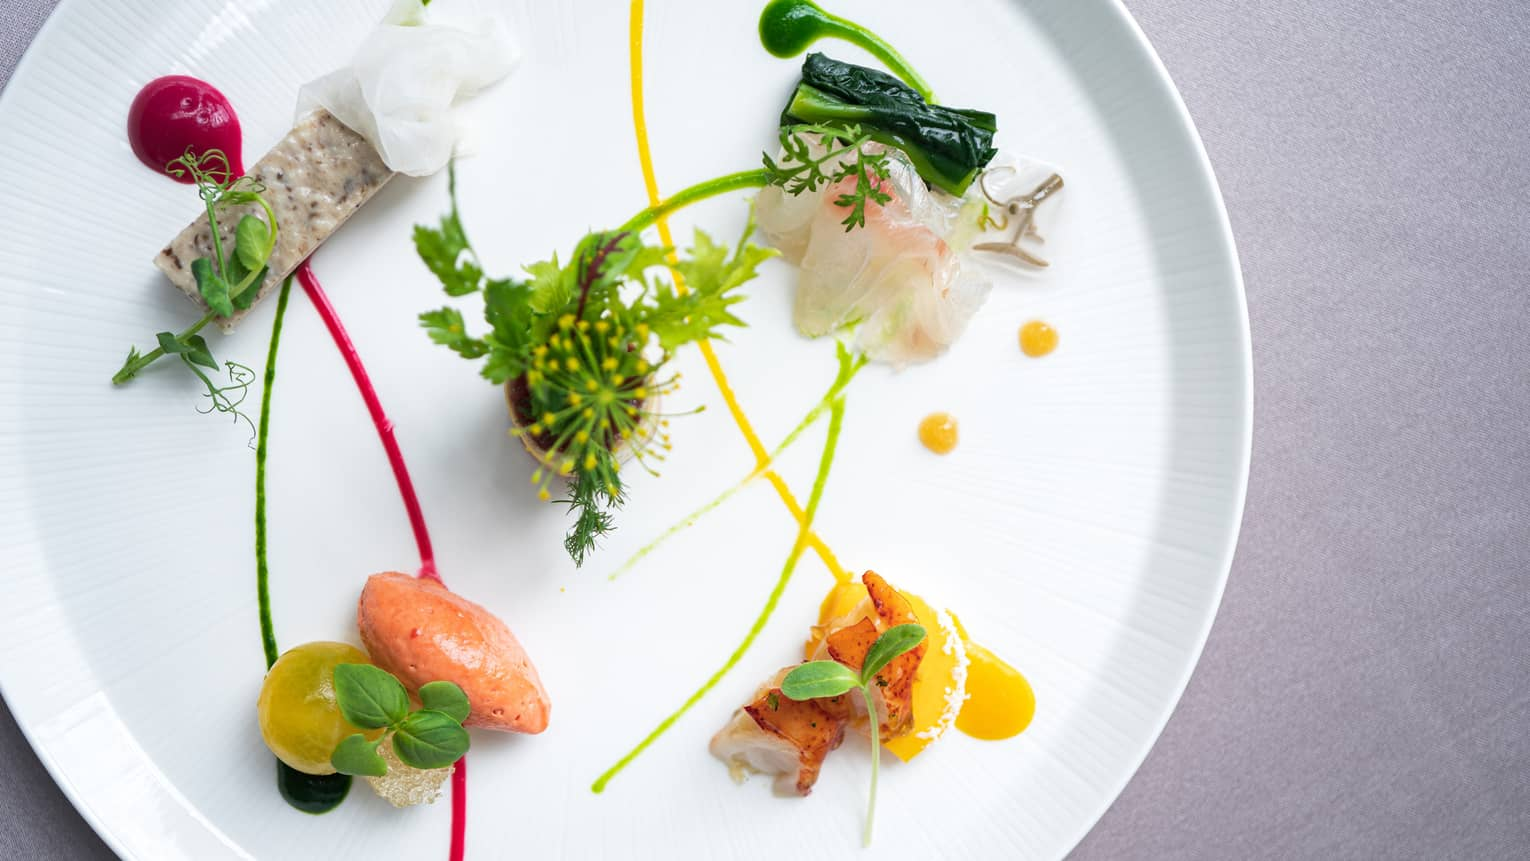 Small appetizers arranged on plate with artistic garnish